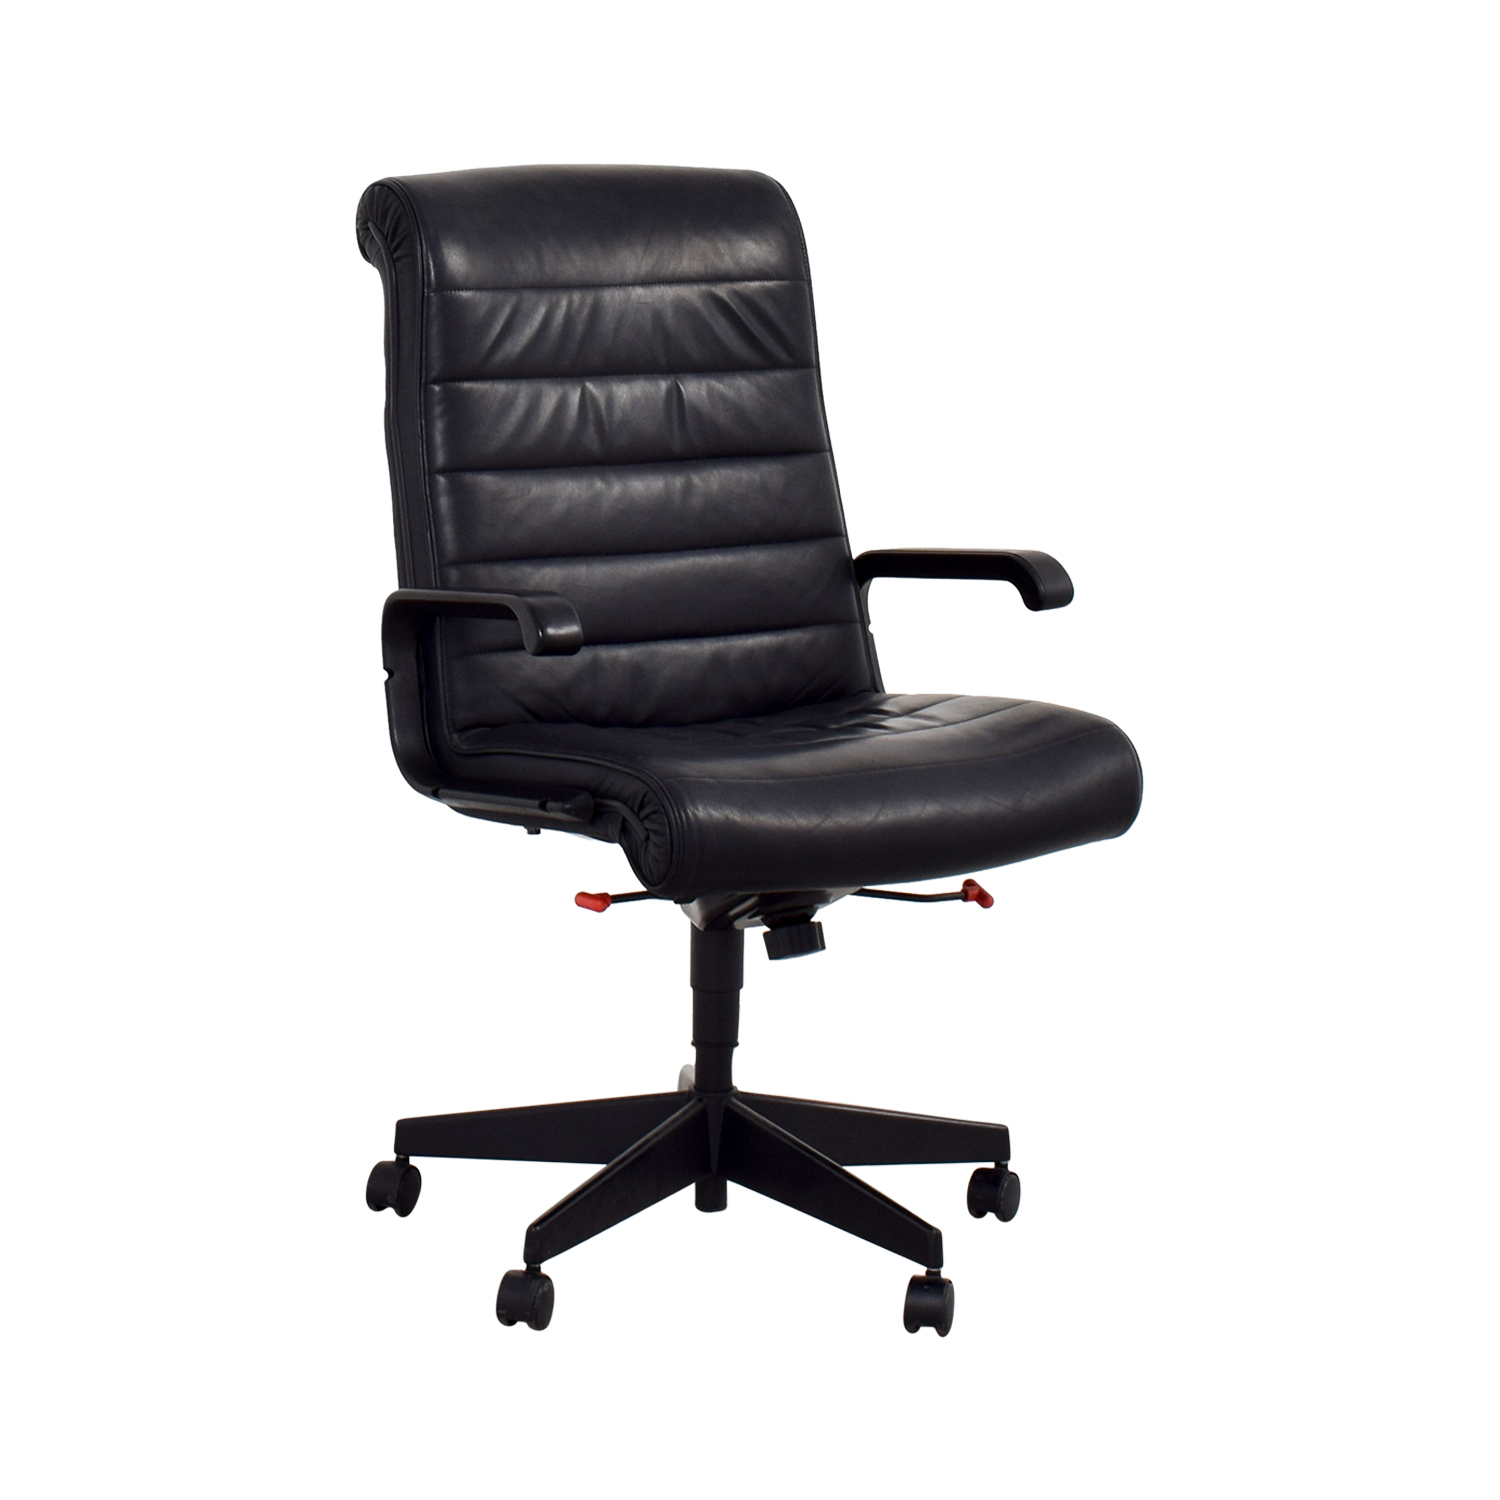 90 Off Black Leather Office Chair Chairs